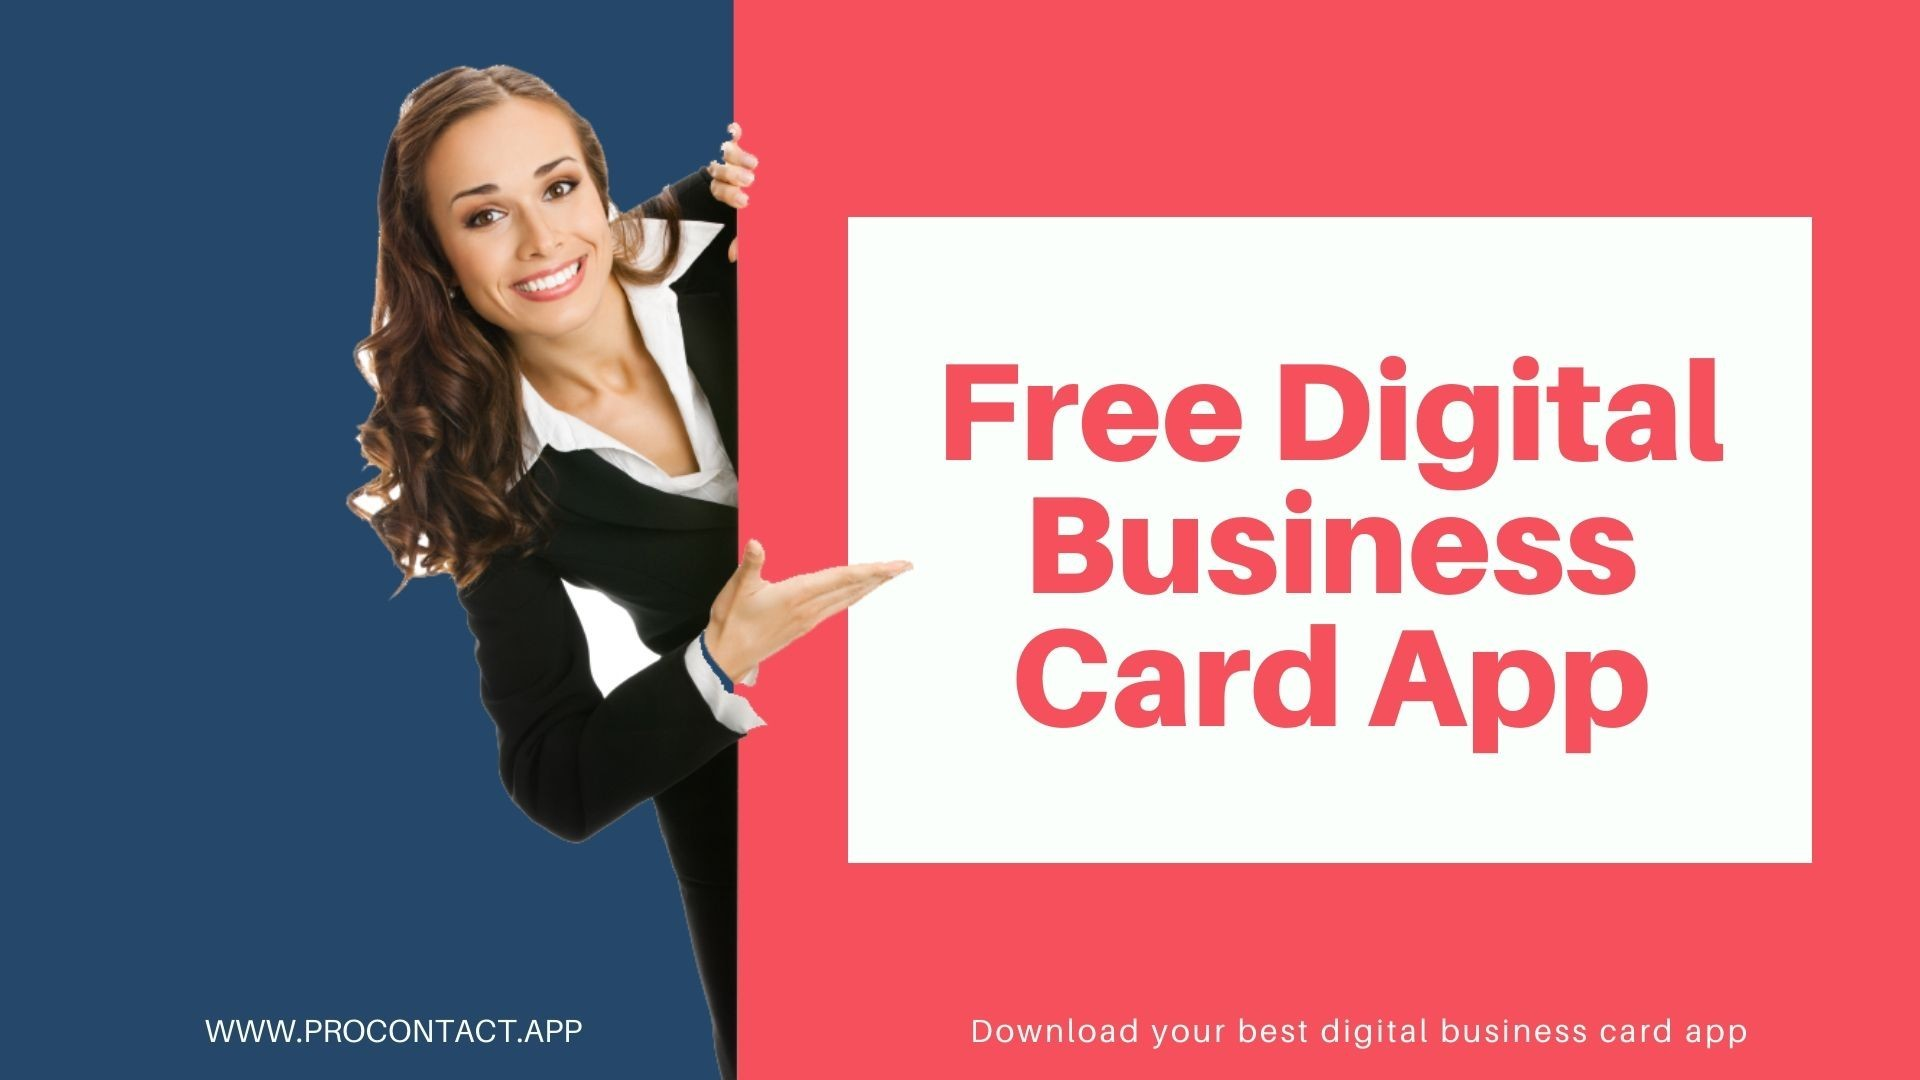 Free Digital Business Card App, You Know You Want It.